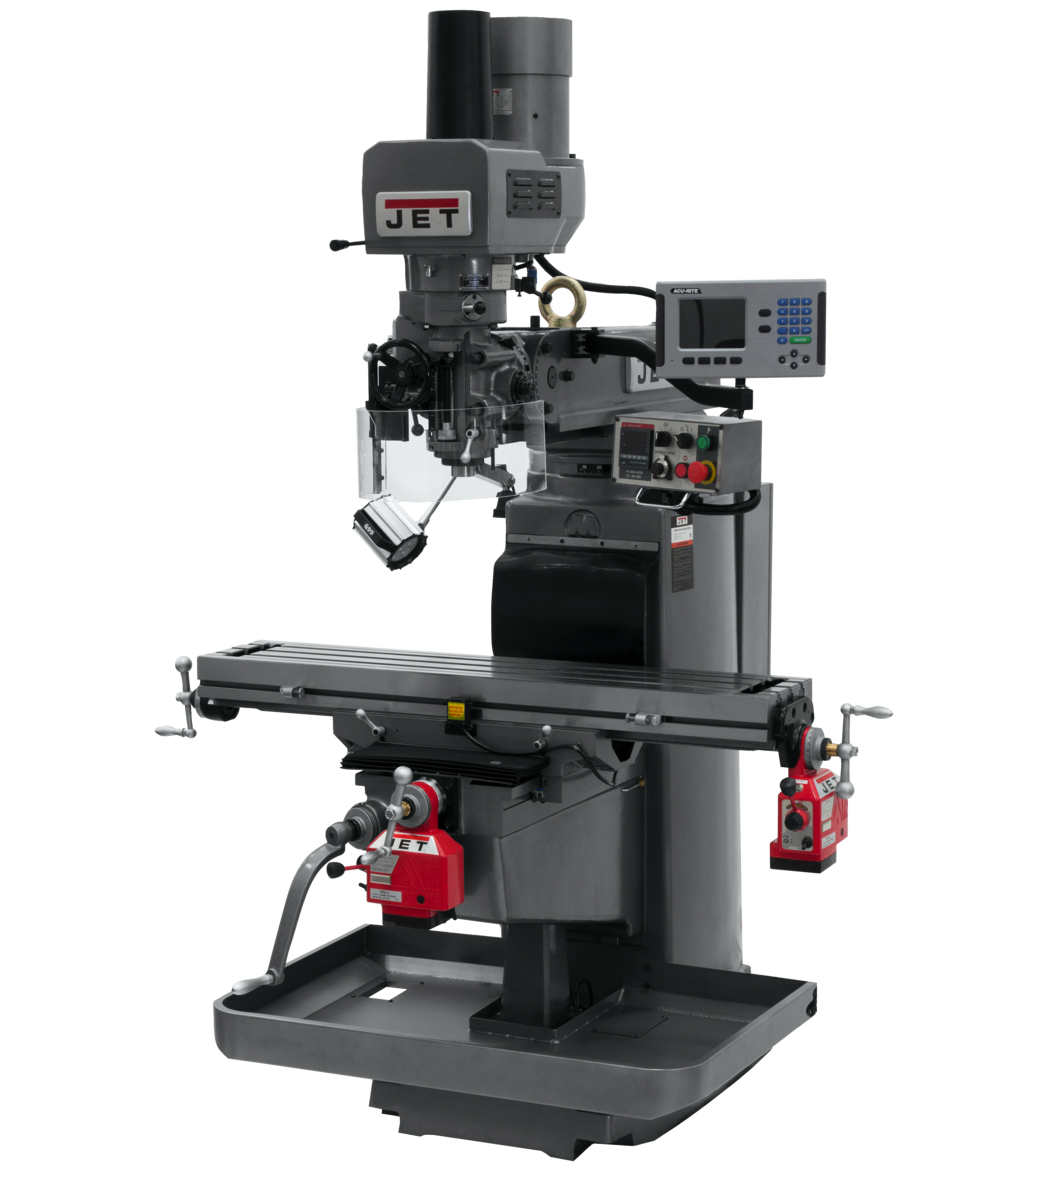 JTM-1050EVS2/230 Mill With Acu-Rite 203  DRO With X and Y-Axis Powerfeeds and Air Powered Drawbar